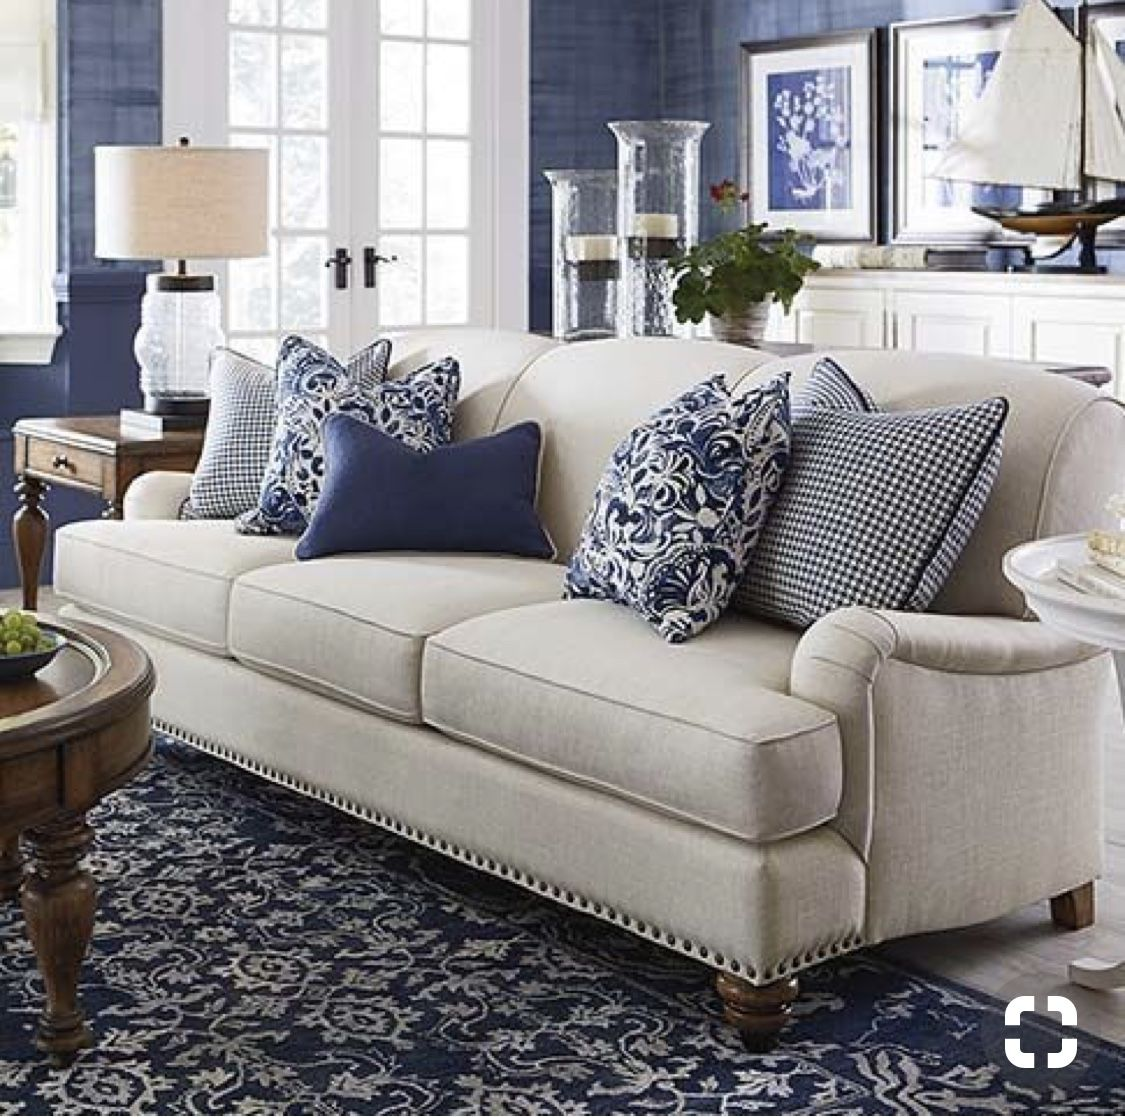 Love The Navy Blue With Images Couches Living Room Coastal